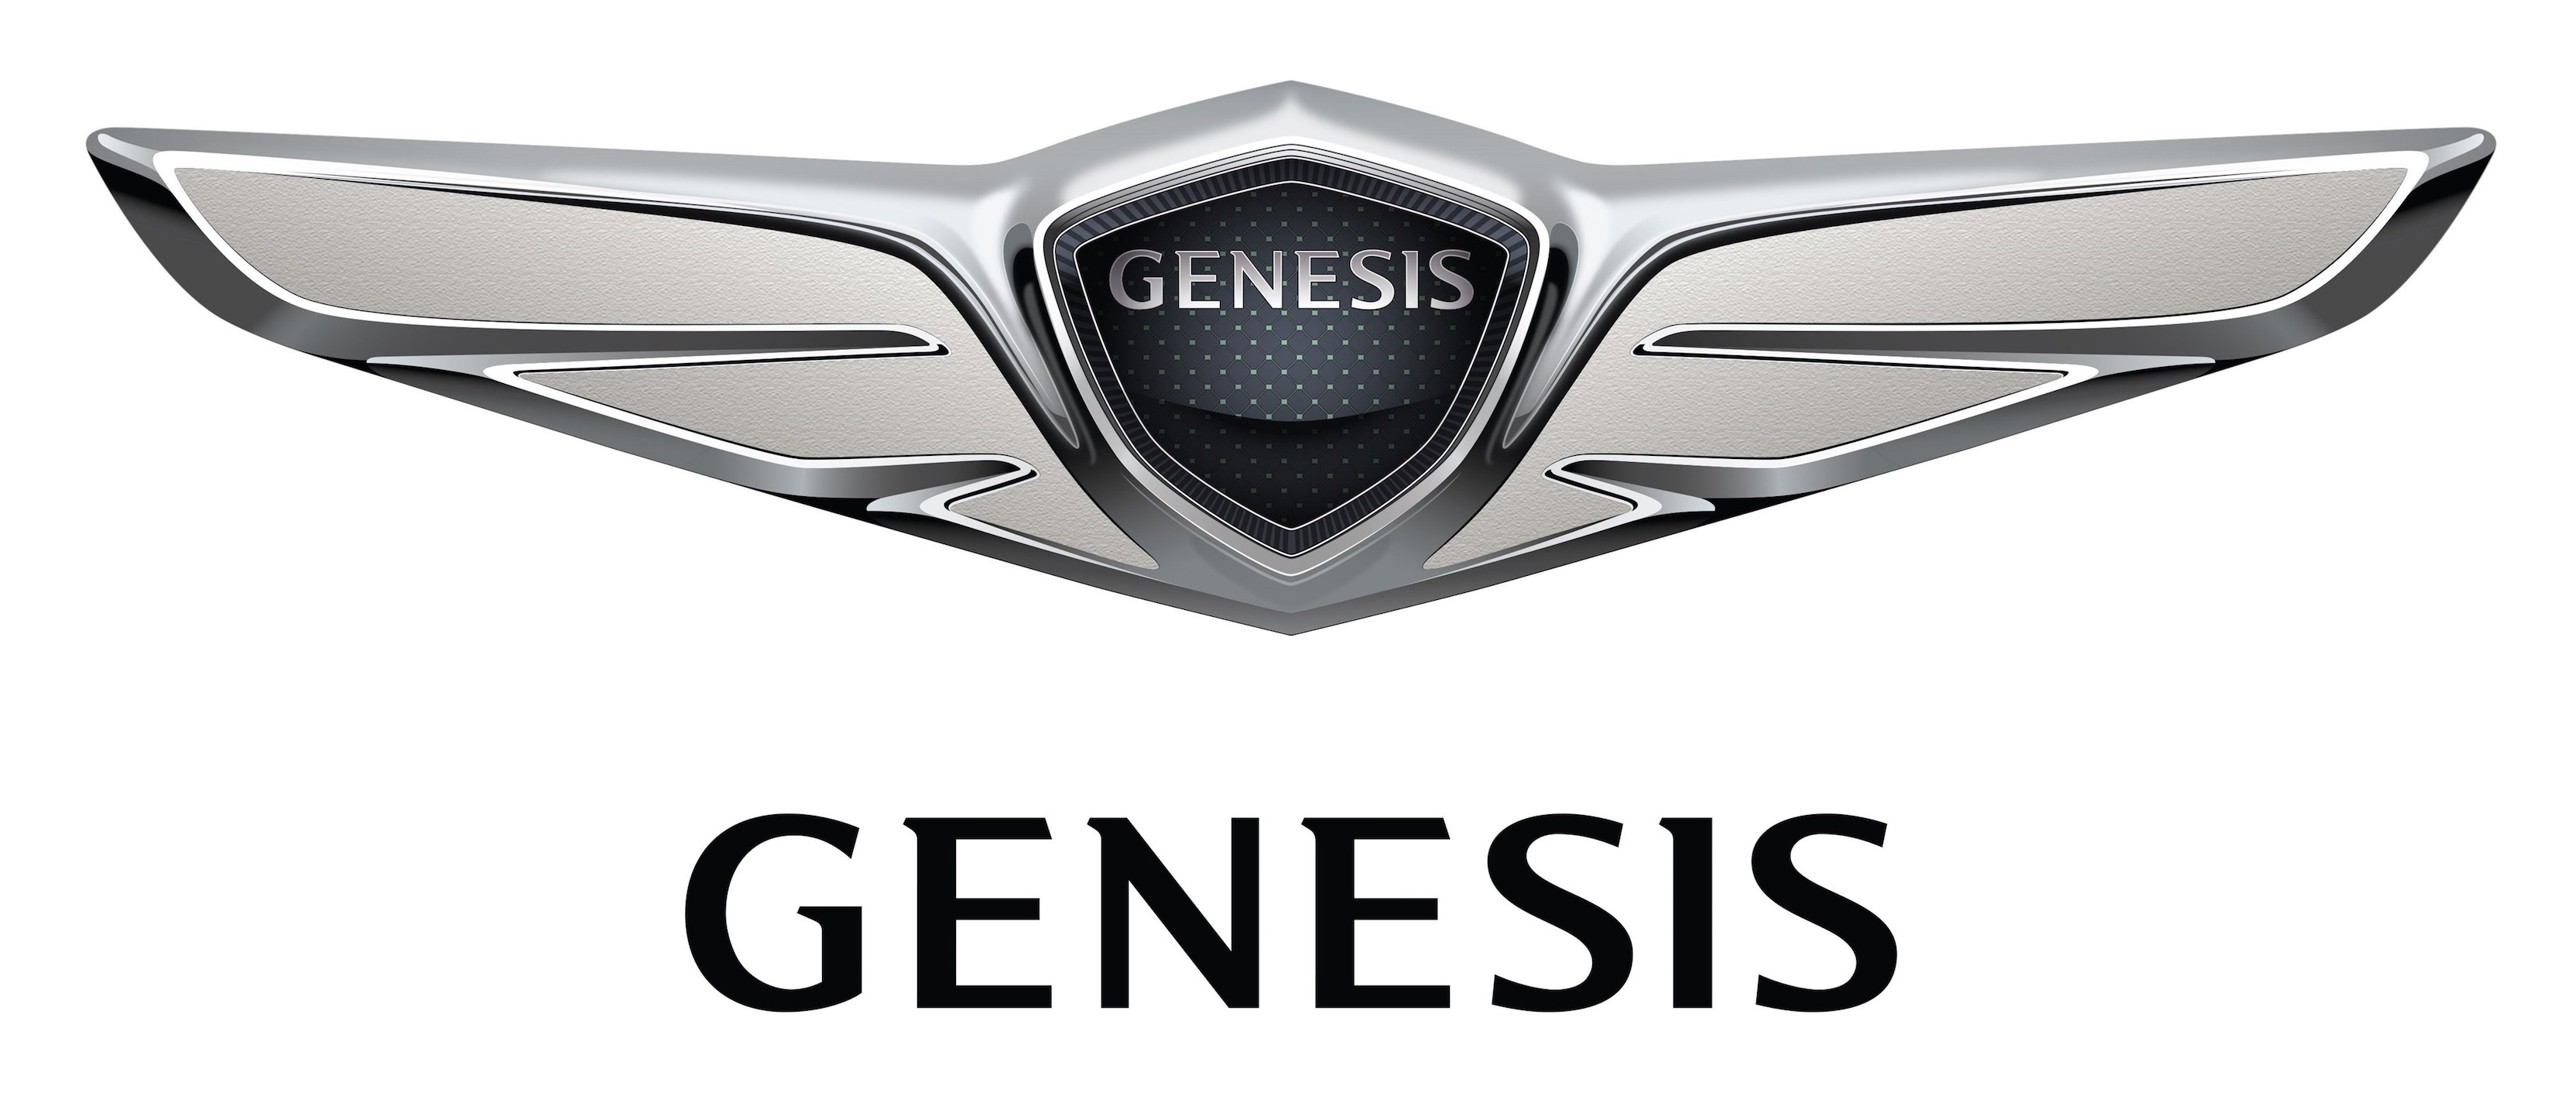 Genesis Logo Meaning And History Latest Models World